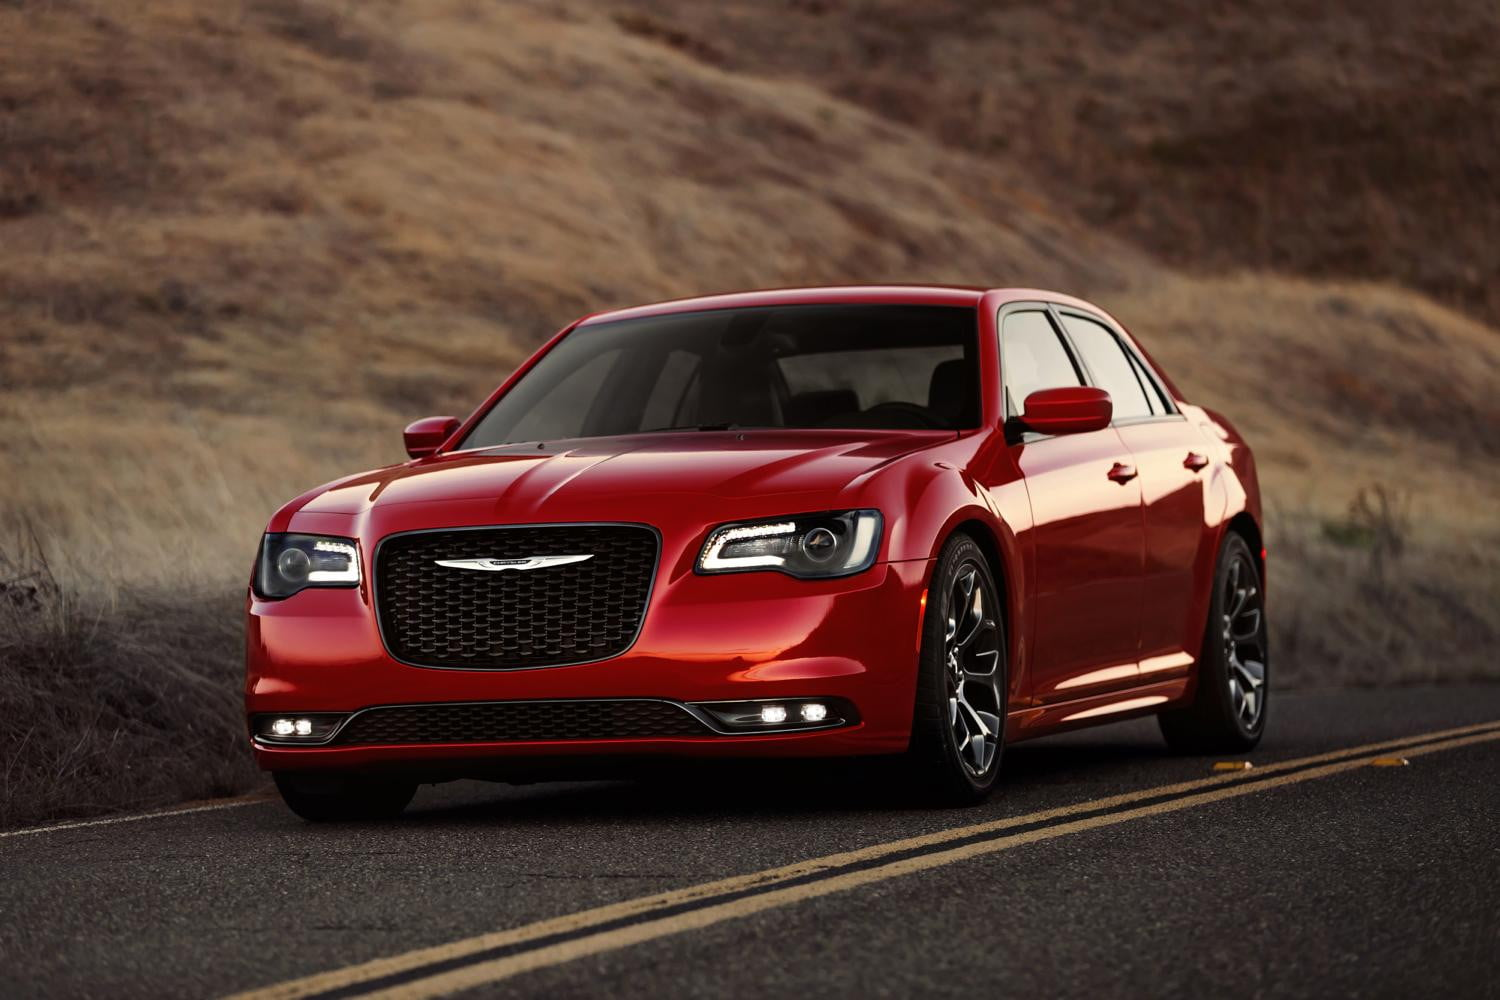 2015 chrysler 300 official specs pictures and performance digital trends. Black Bedroom Furniture Sets. Home Design Ideas